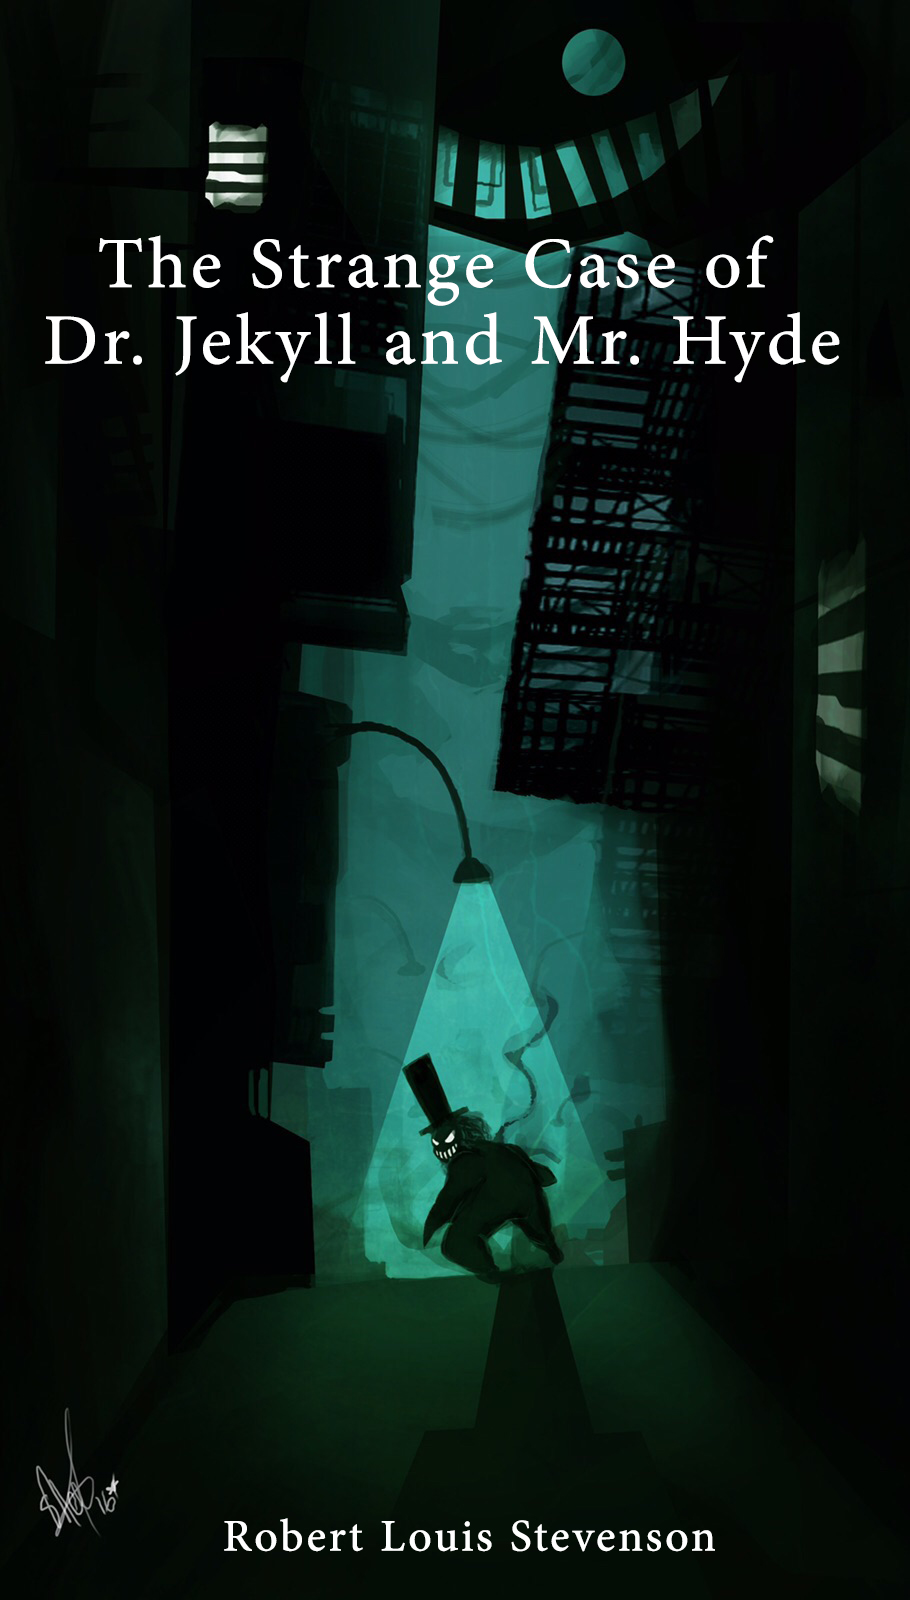 Custom cover of Dr. Jekyll and Mr. Hyde by Bader Shirawi